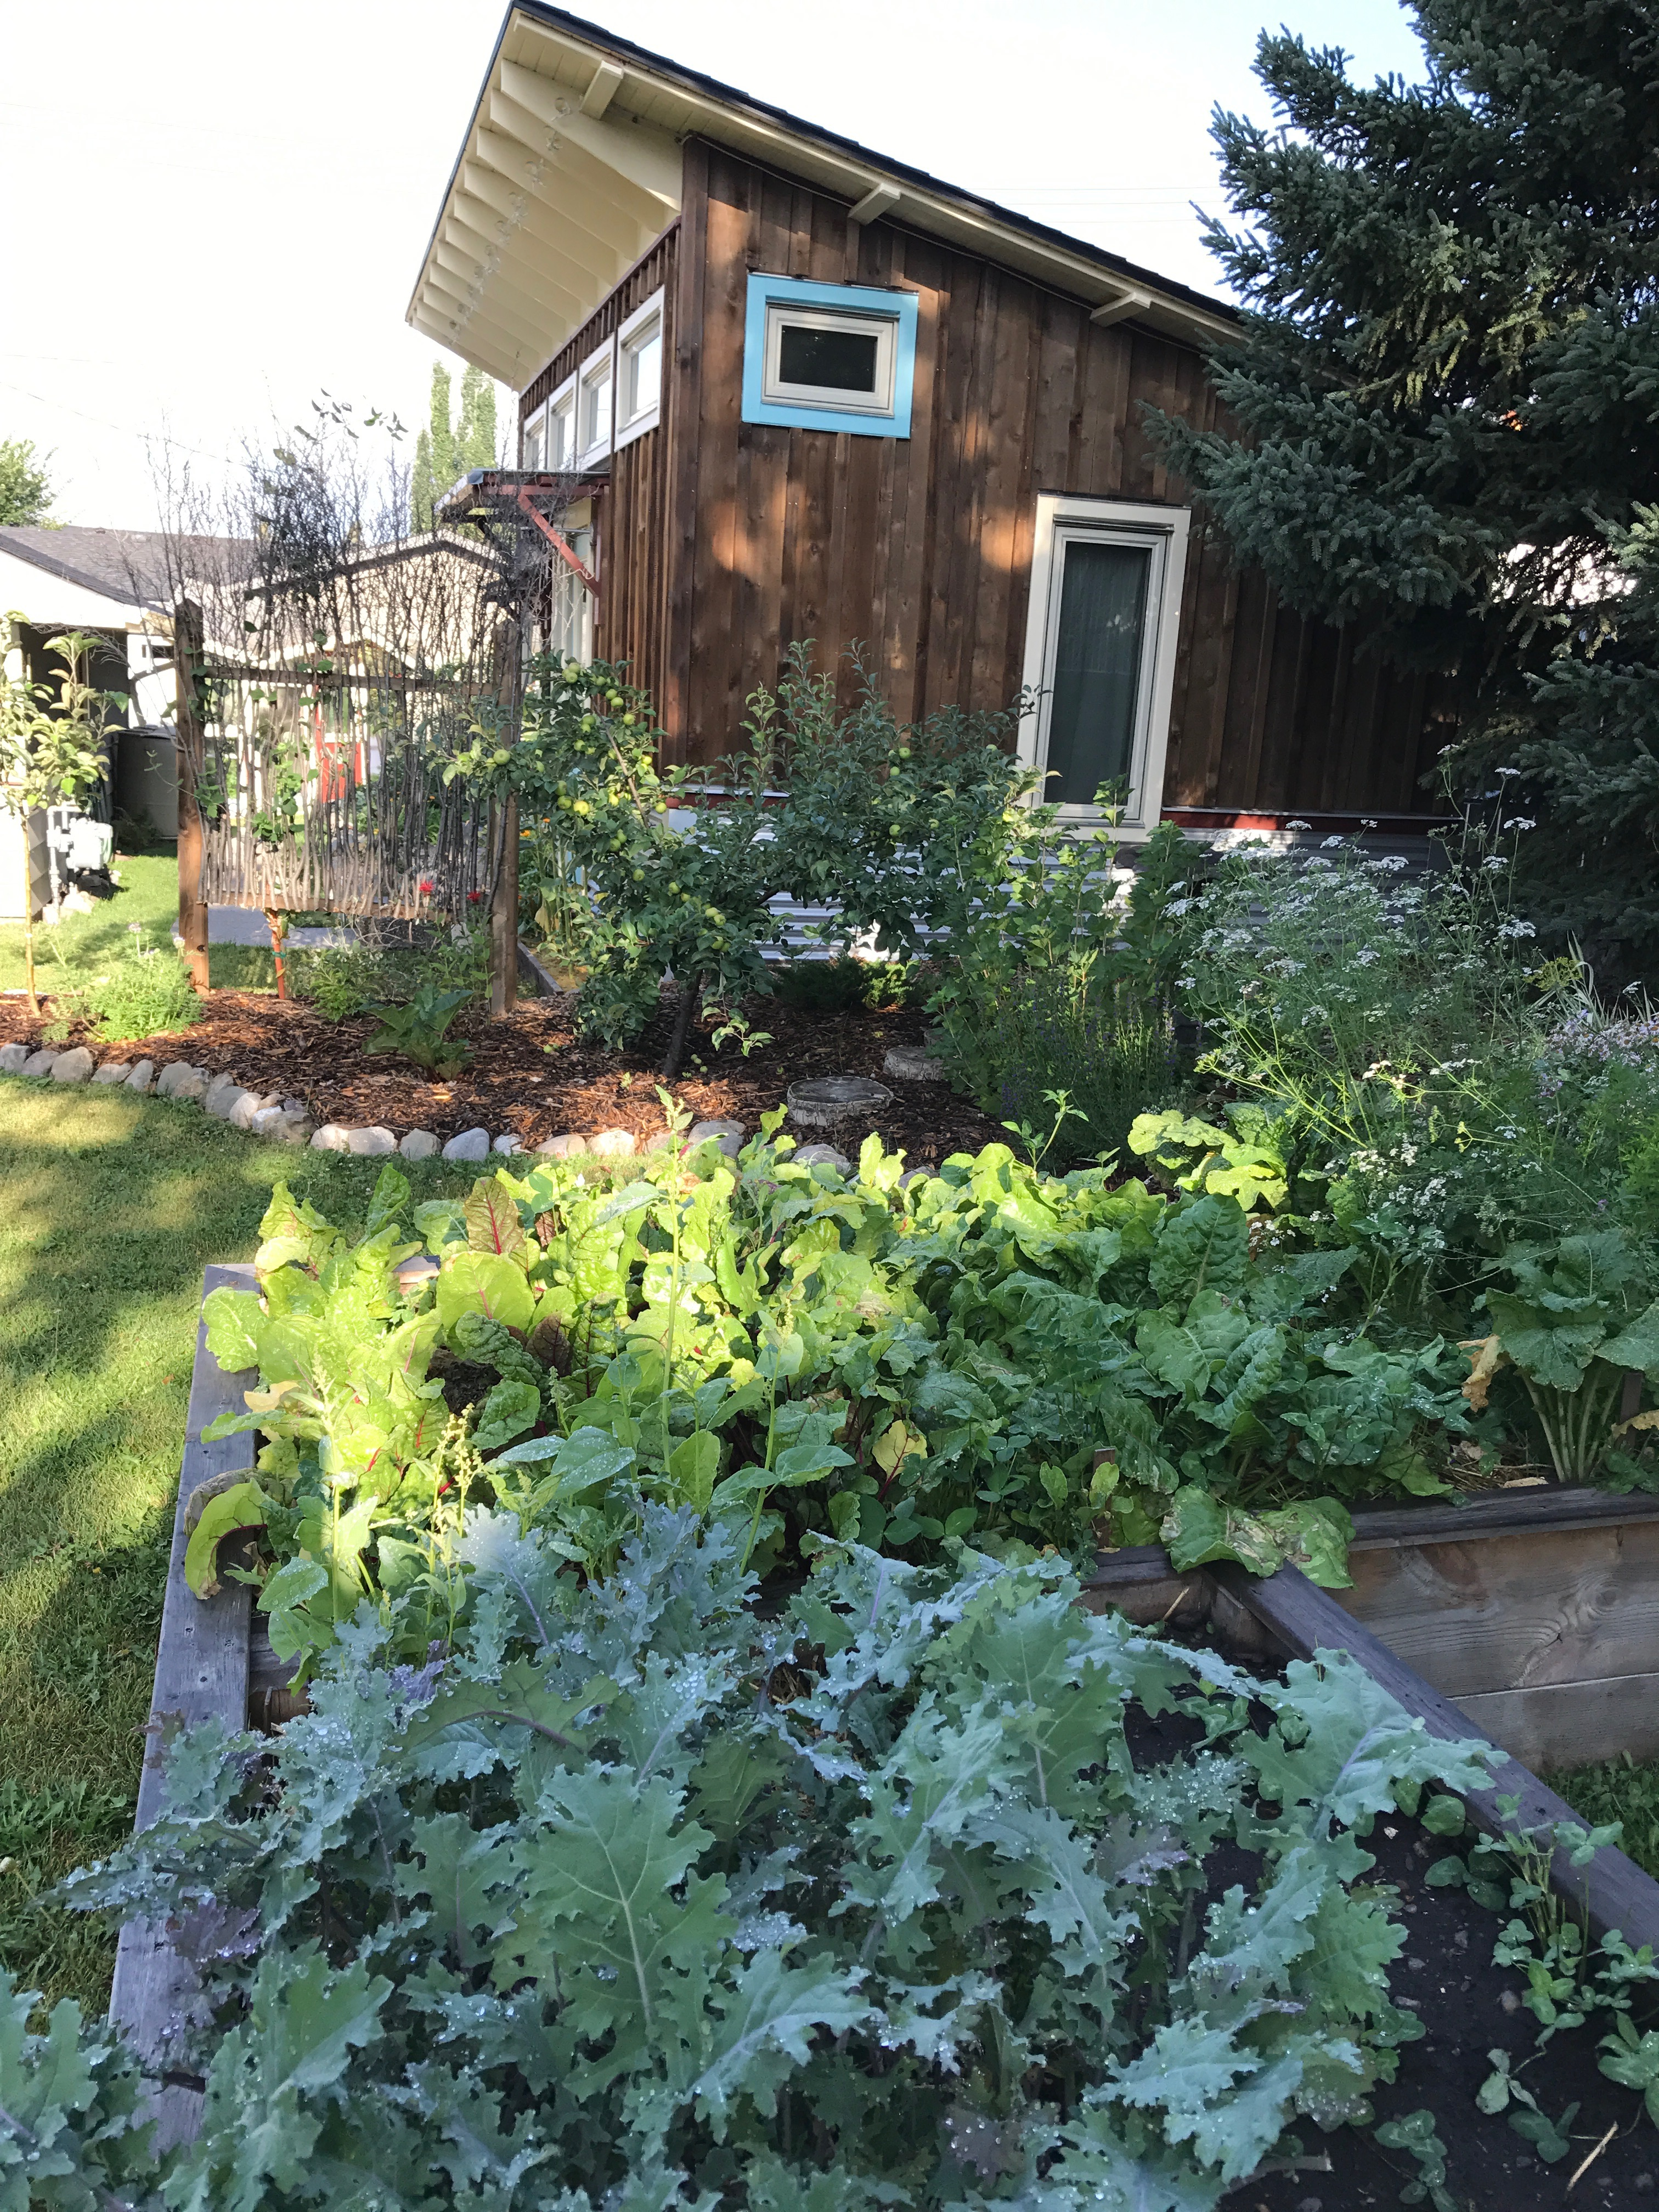 Kale, chard, etc. in raised bed